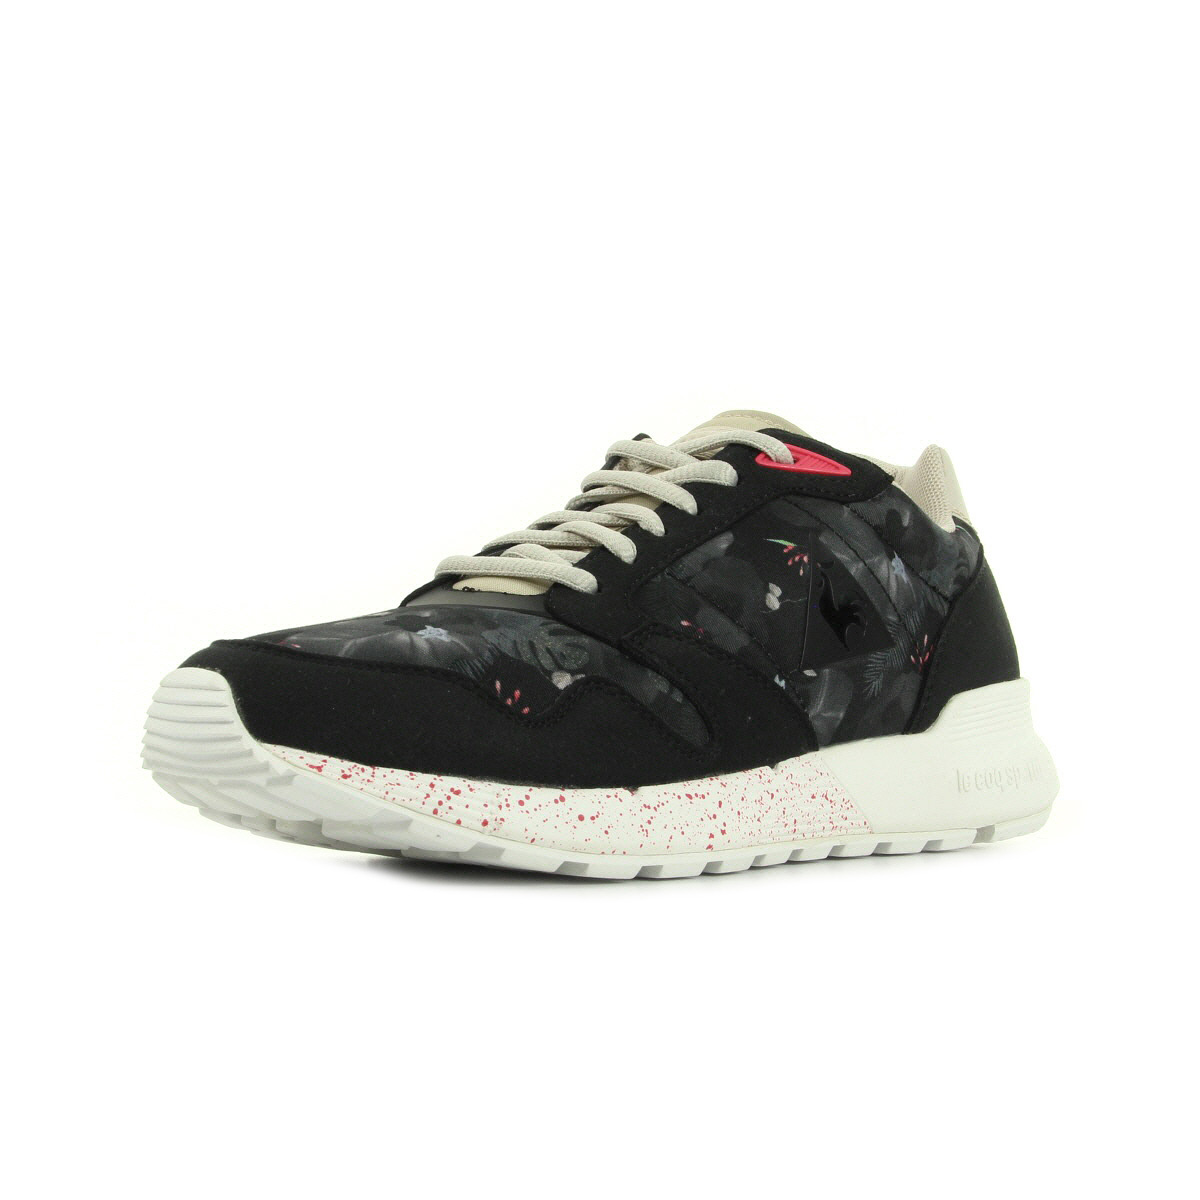 le coq sportif omega x w winter floral 1620832 chaussures homme homme. Black Bedroom Furniture Sets. Home Design Ideas